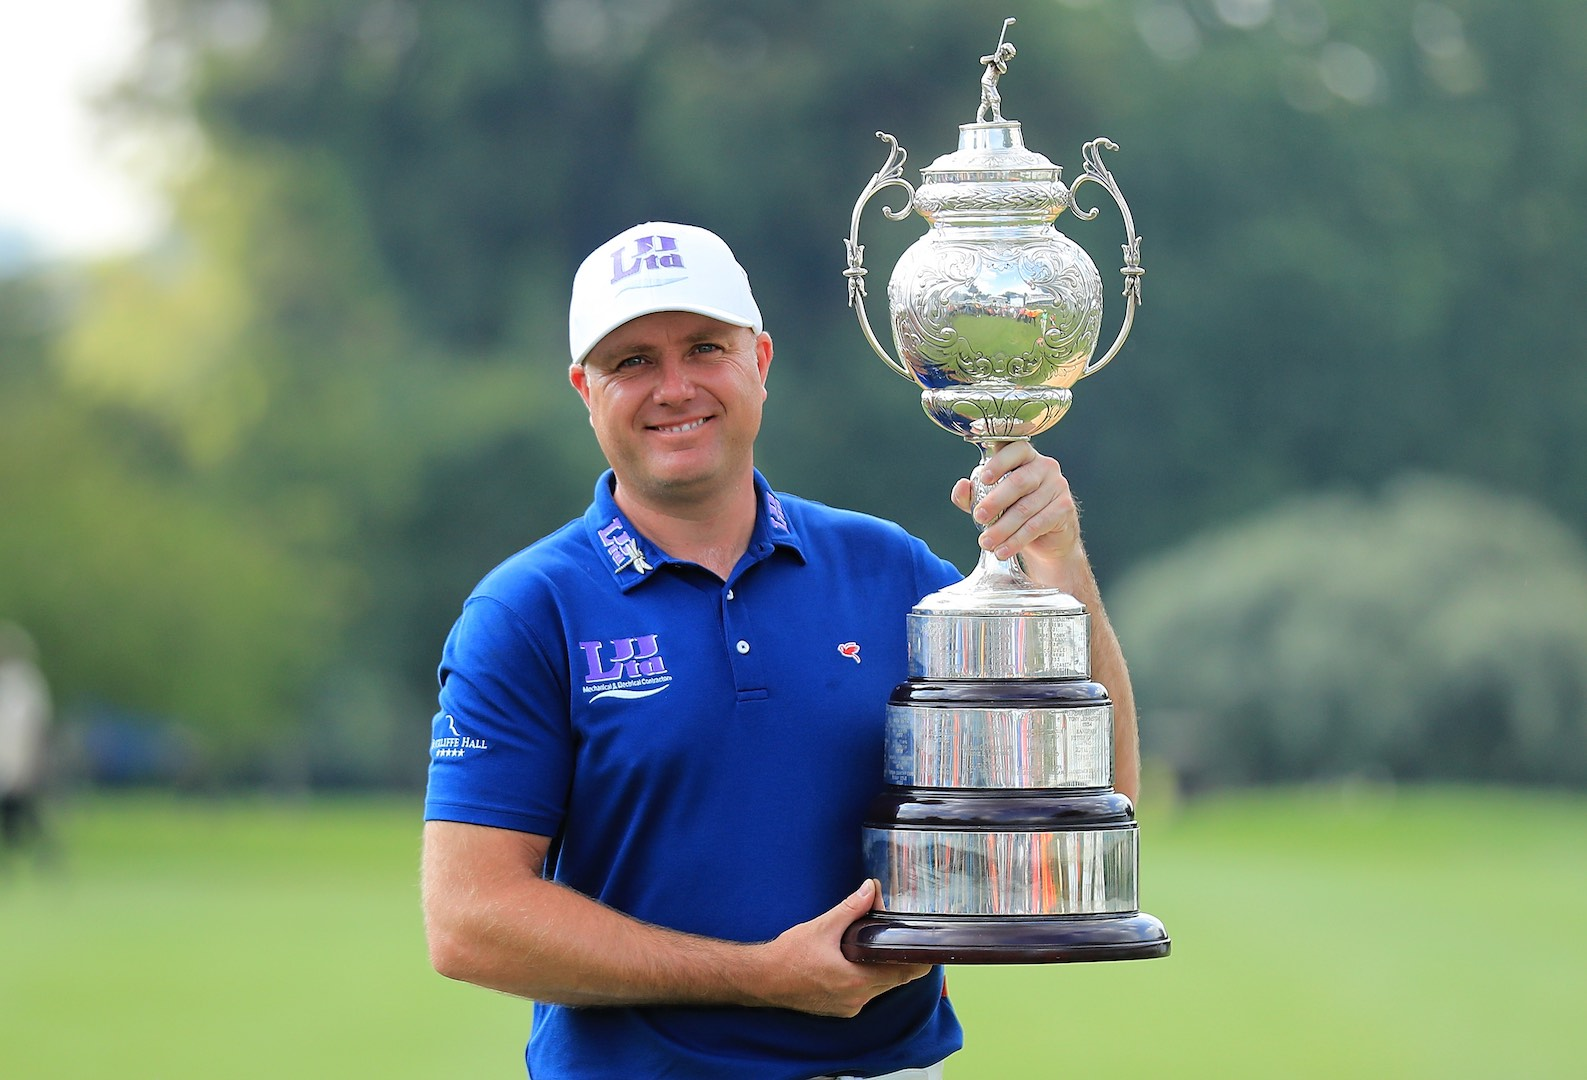 Massive payday for Graeme Storm's local Caddy